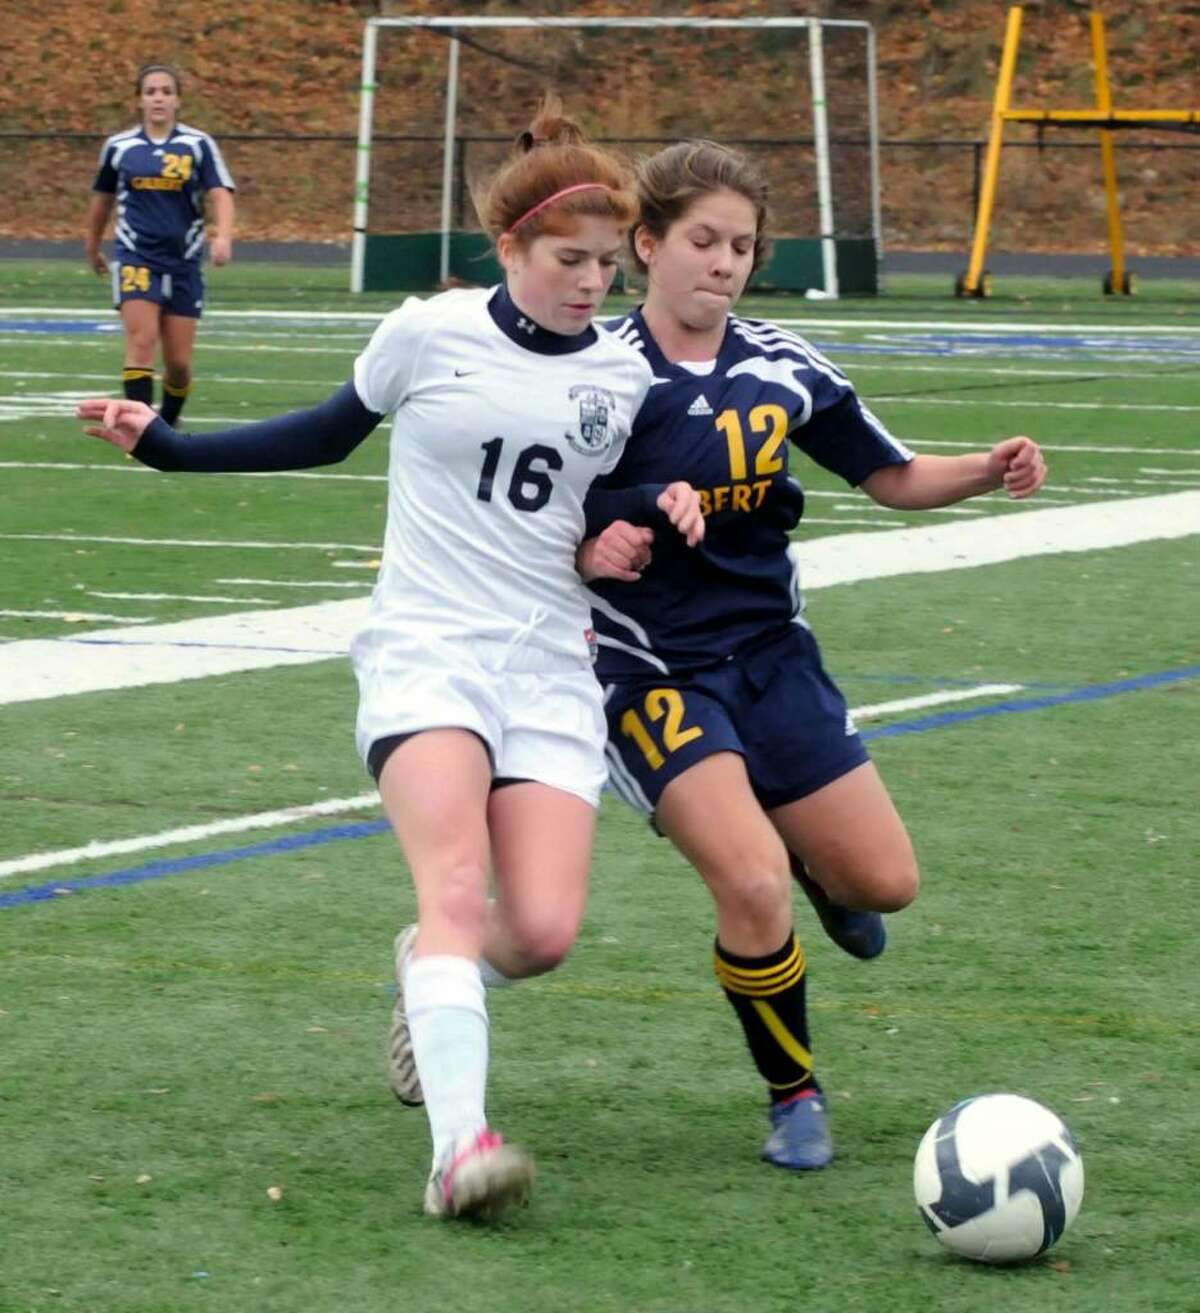 Immaculate's Sarah Murtha, left, and Gilbert's Rachel Wendal struggle against each other to gain possession of the ball at the 2009 Girls Soccer Class S Quarterfinals on Friday Nov.13 at Immaculate High School in Danbury CT. Immaculate vs Gilbert High School, Winsted, CT.